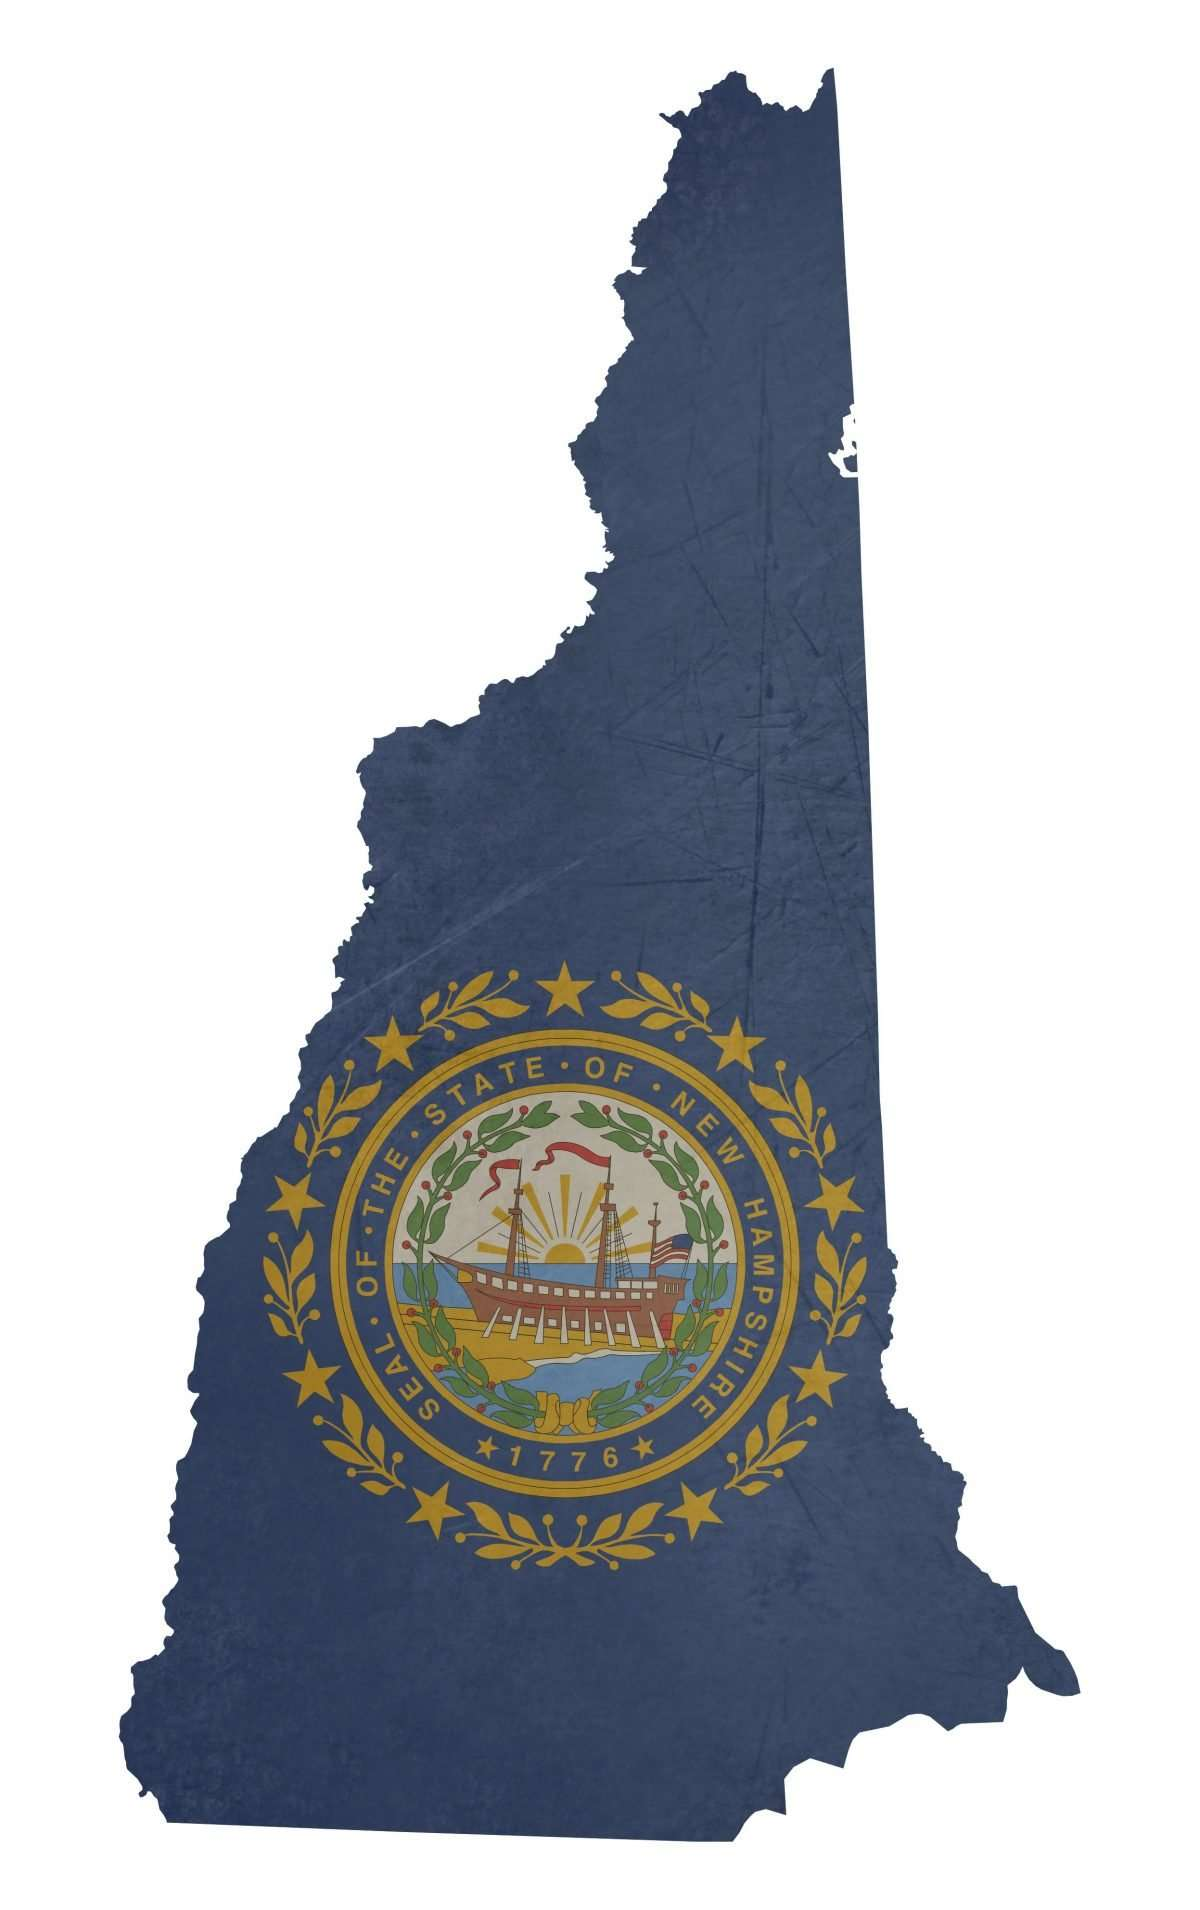 New Hampshire joins feds in independent contractor misclassification fight